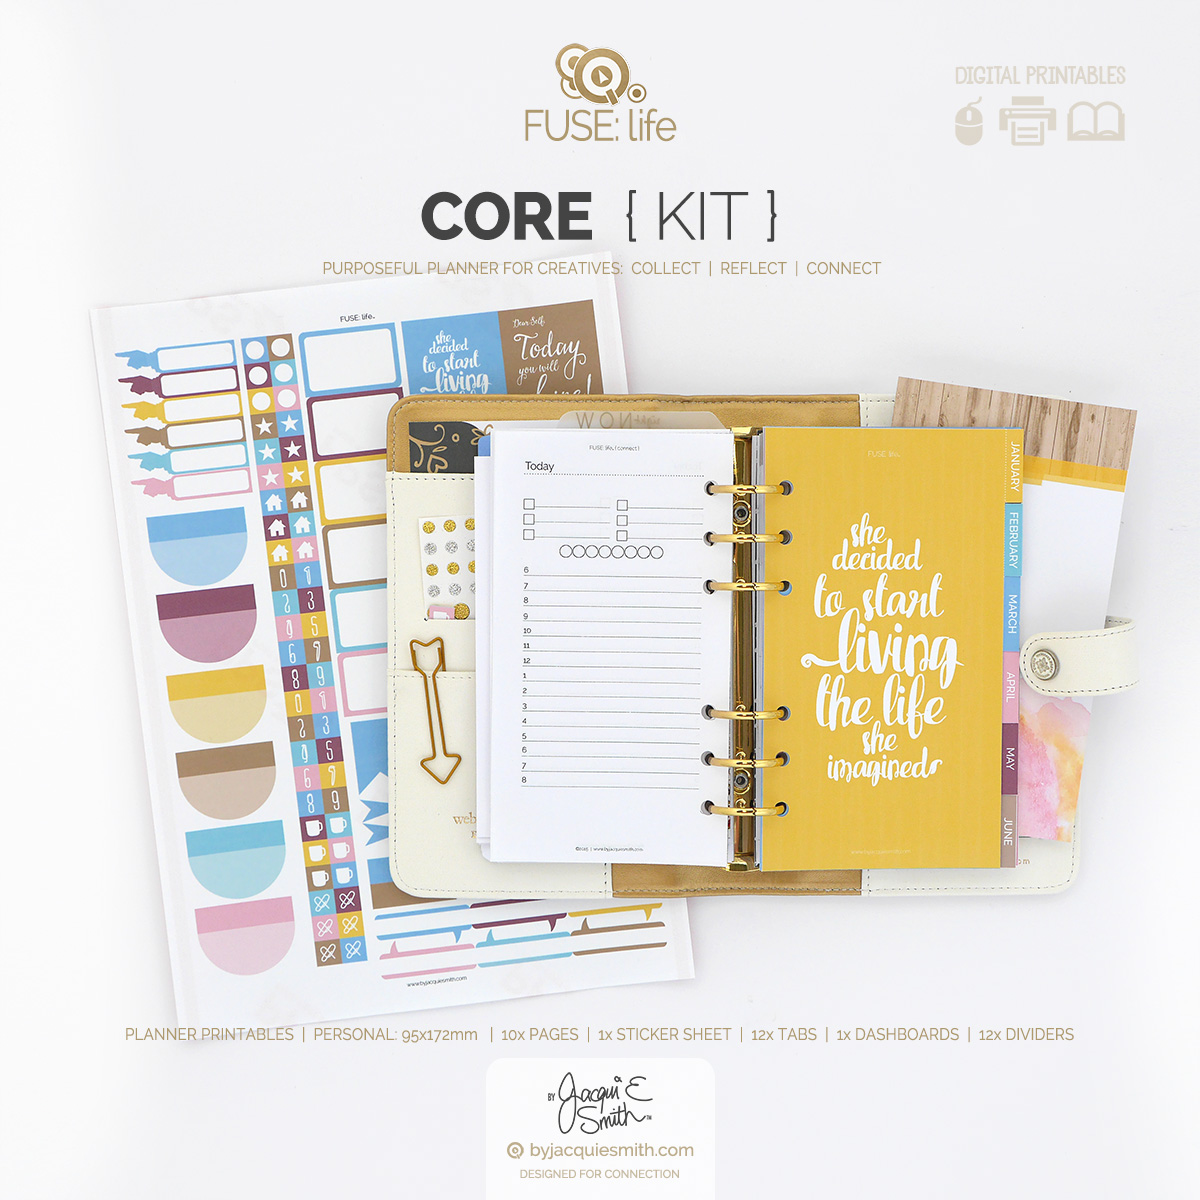 Personal FUSE:life Core Kit planner printables at www.byjacquiesmith.com